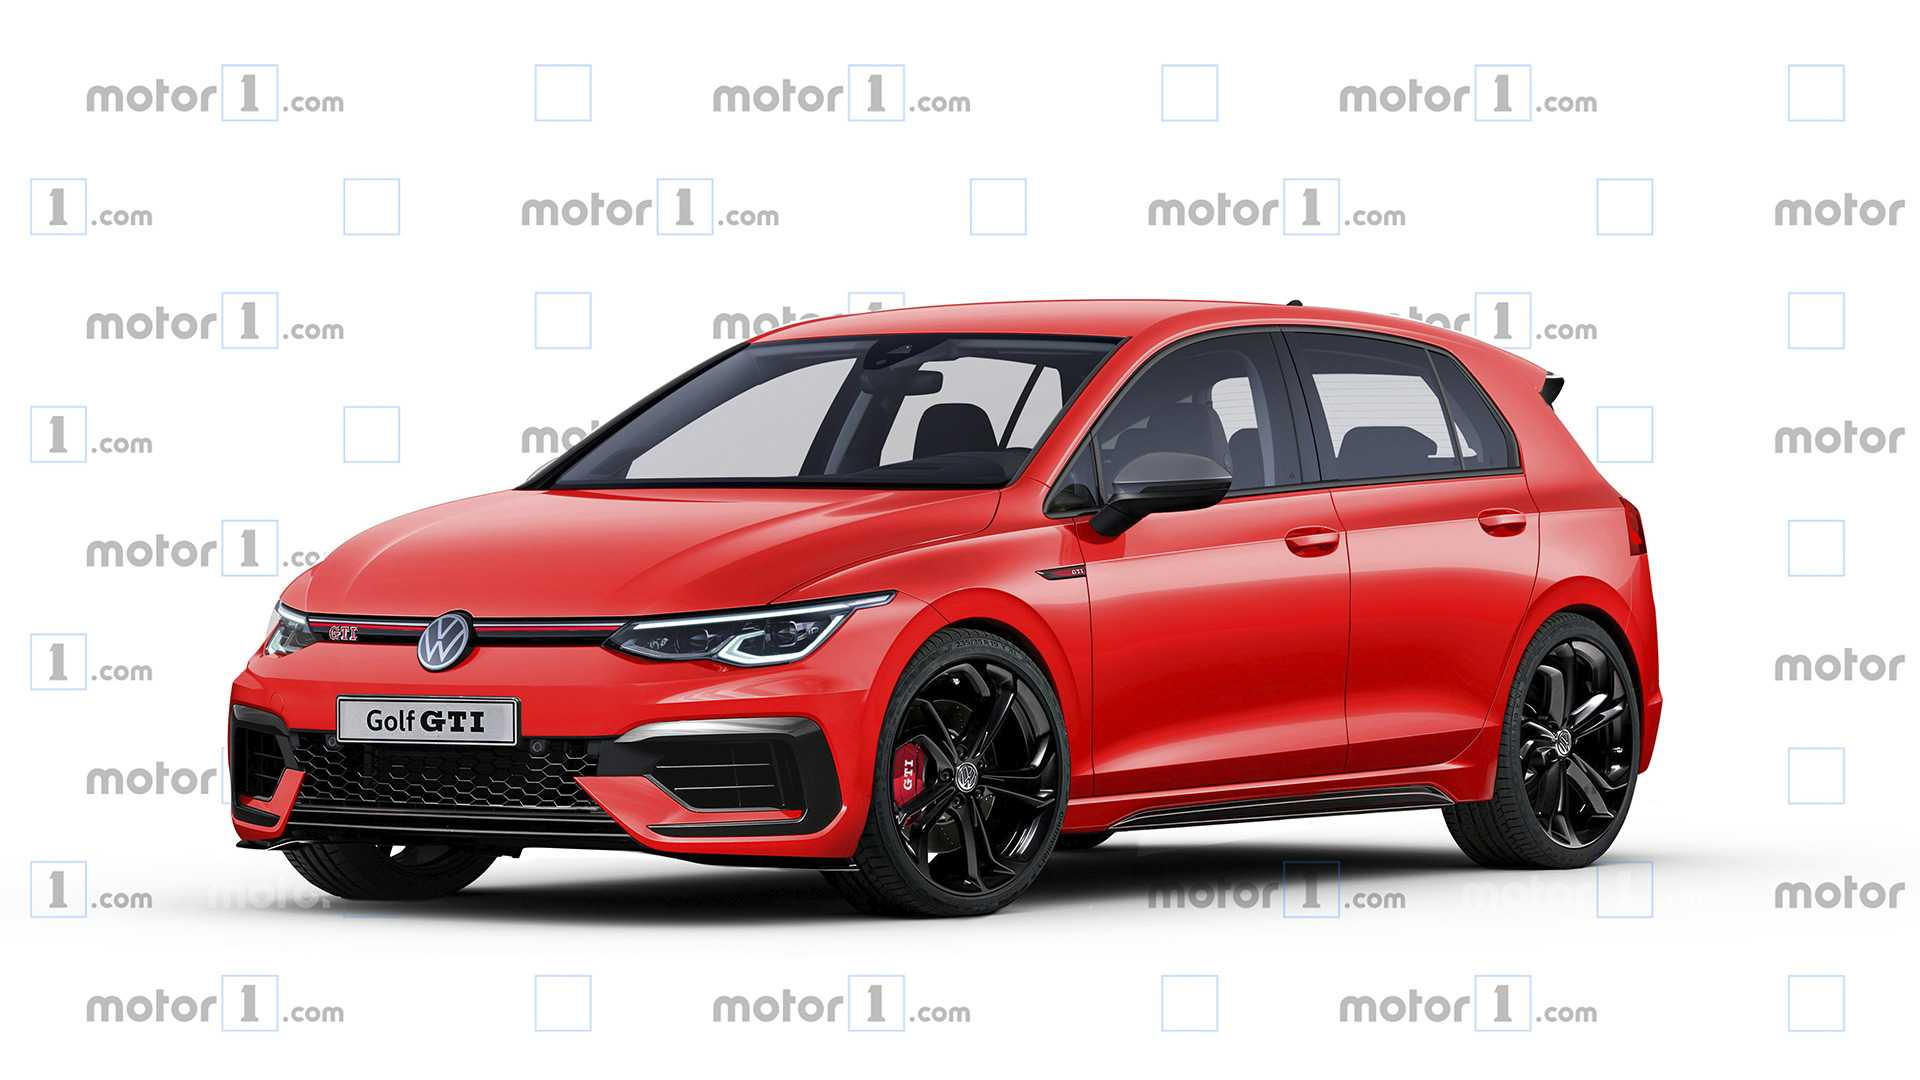 Red 1.com New Vw Golf Gti Tcr Allegedly Has Up To 286 Hp